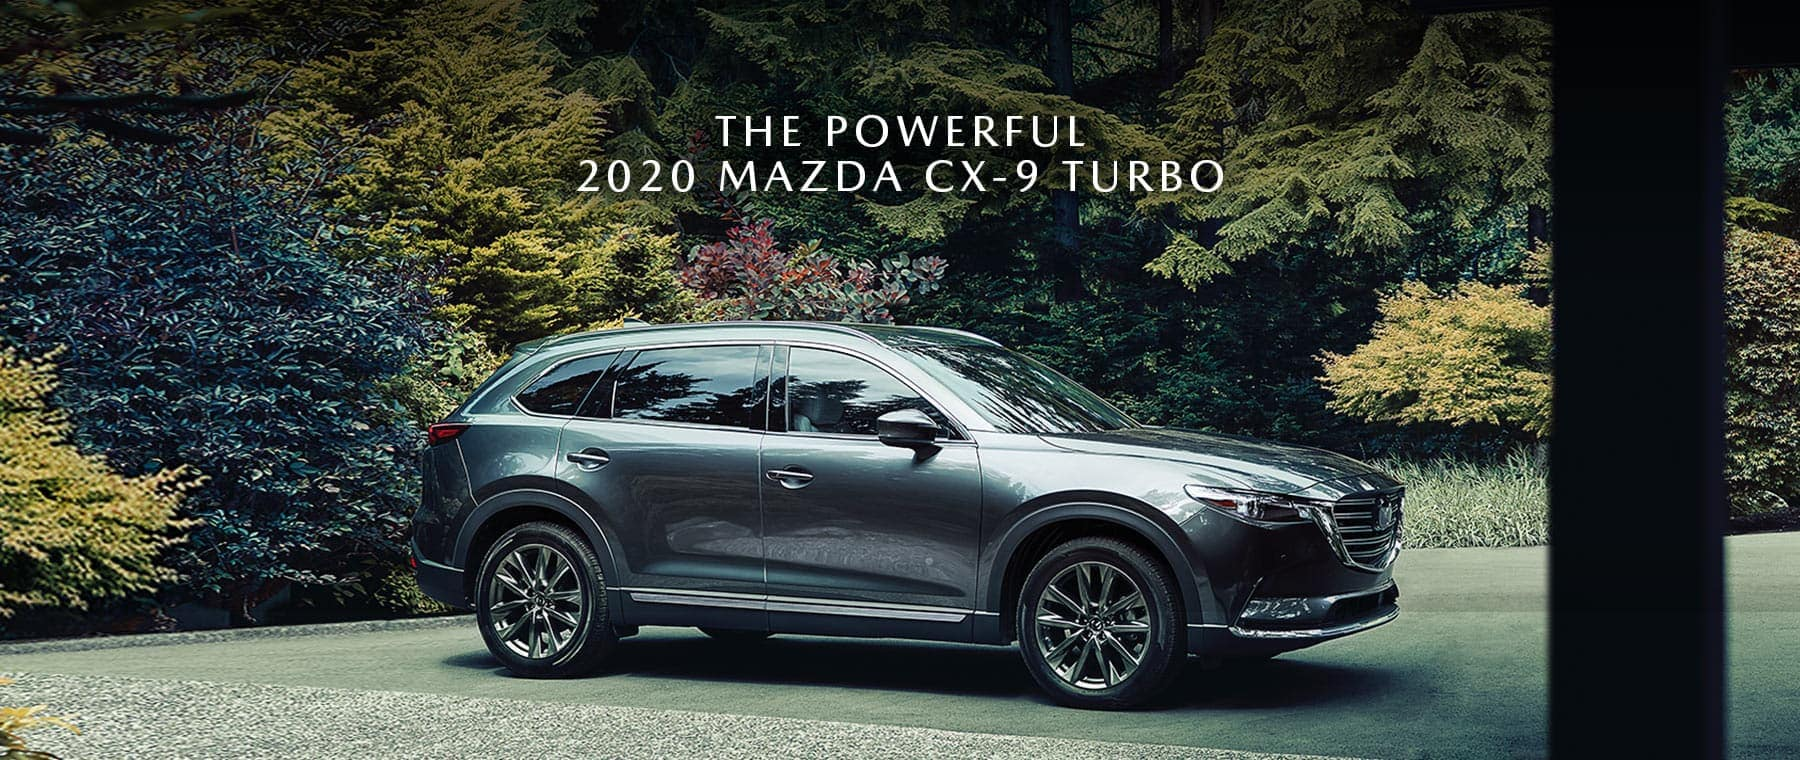 2020 Mazda CX-9 Turbo